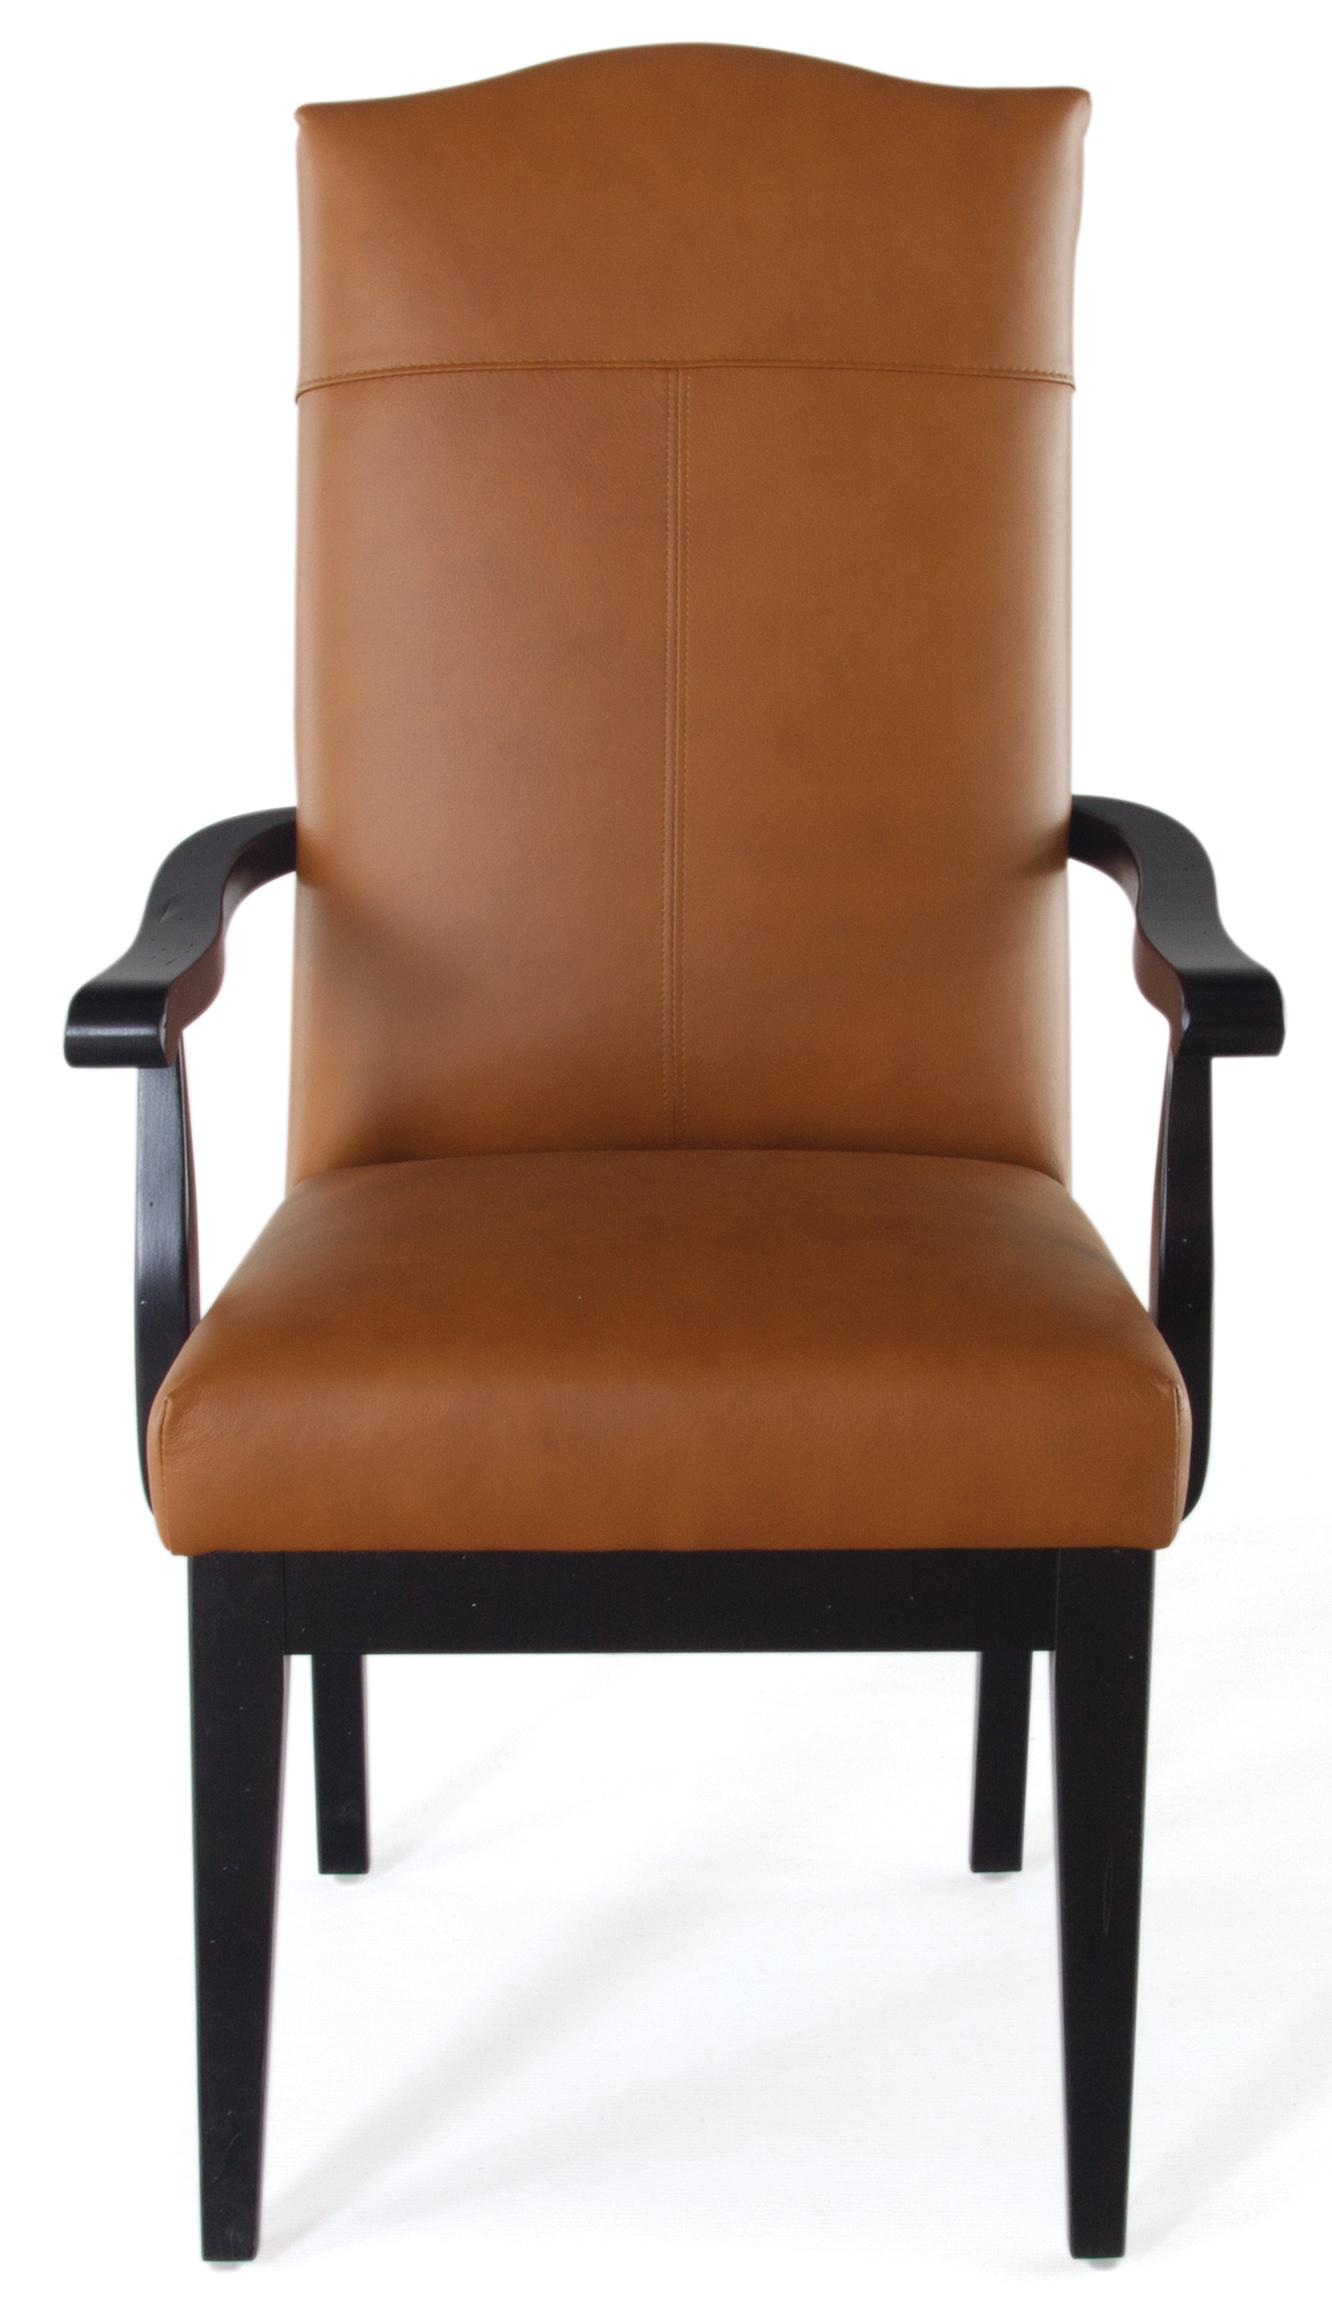 dining accent chairs stressless recliner reviews canadel loft custom customizable upholstered arm